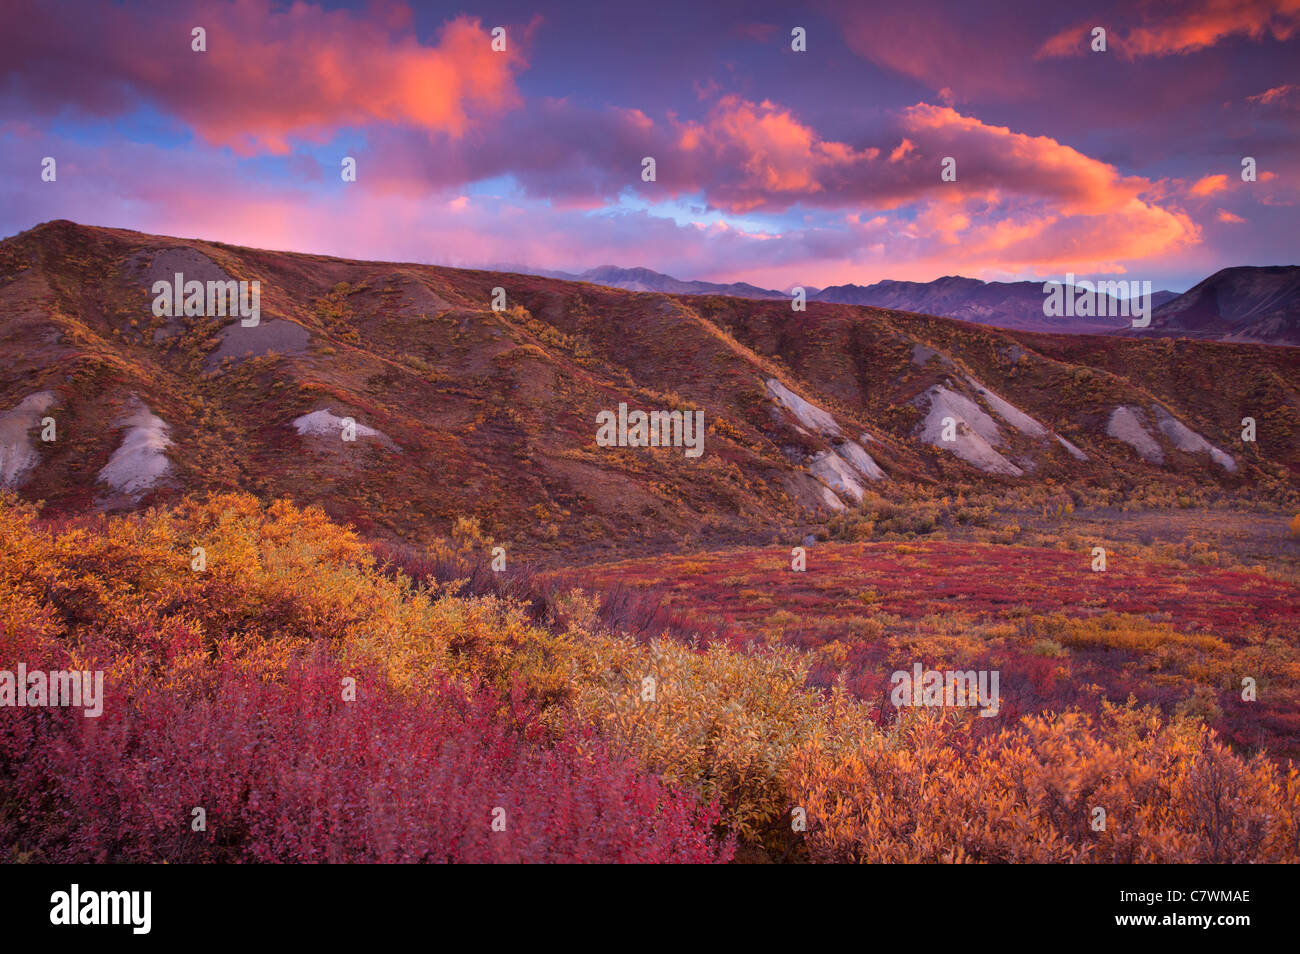 Sonnenuntergang in Sable Pass, Denali-Nationalpark, Alaska. Stockfoto